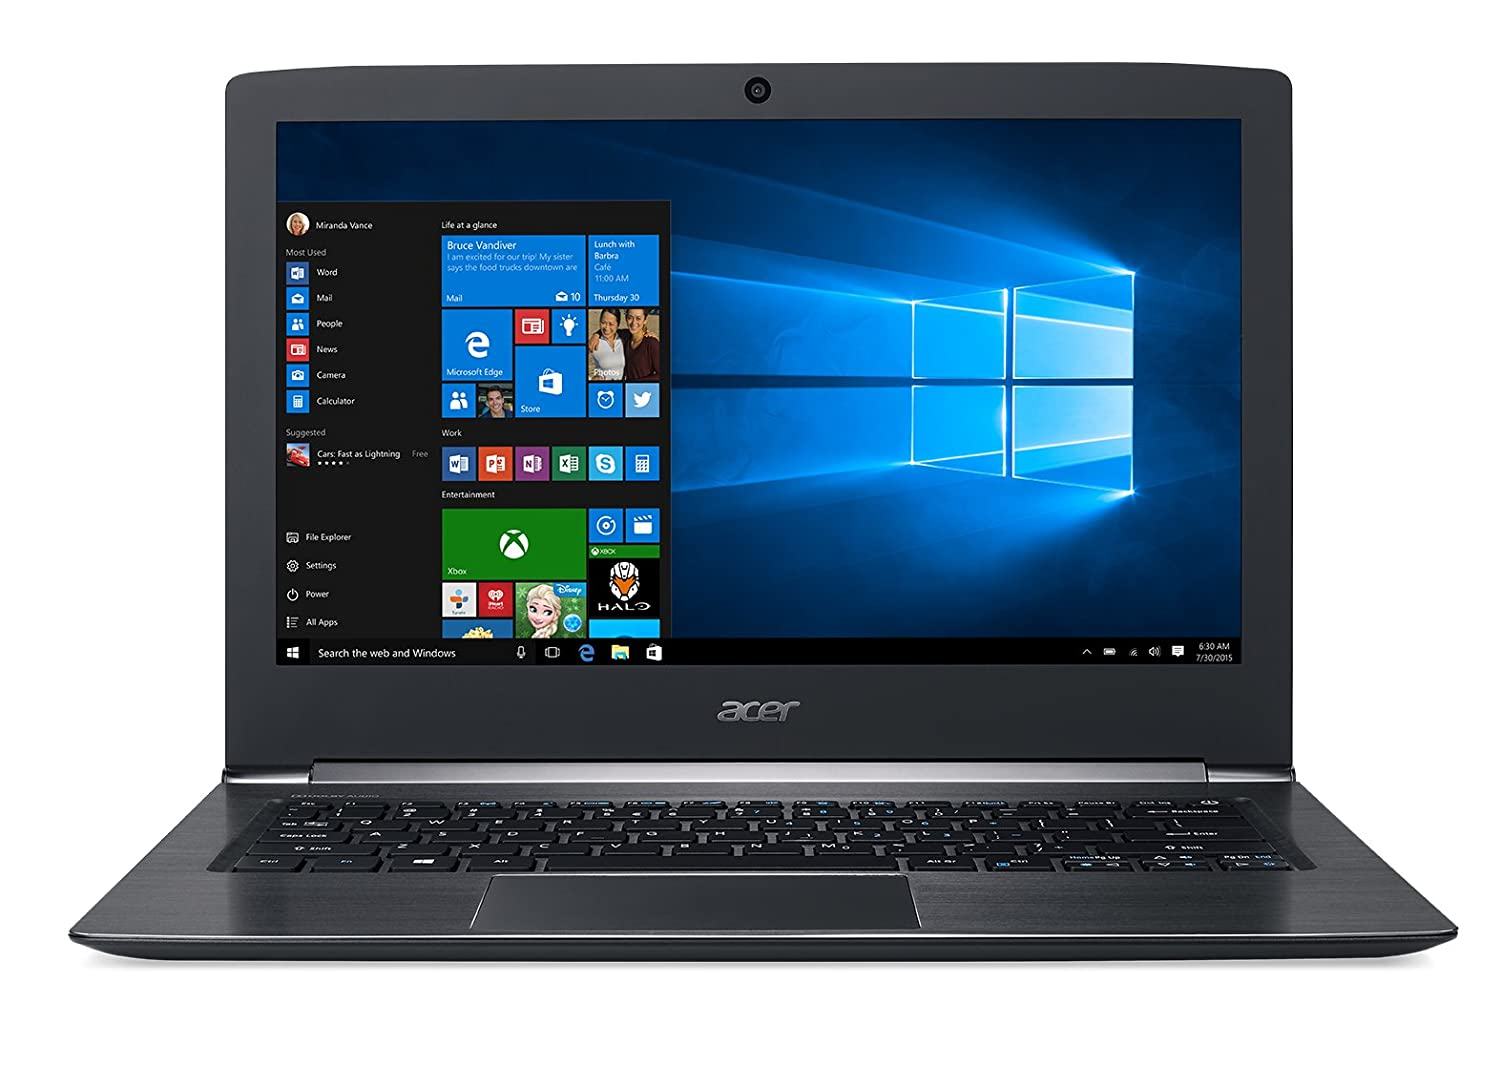 Acer Aspire S13 Black Friday Deal 2020